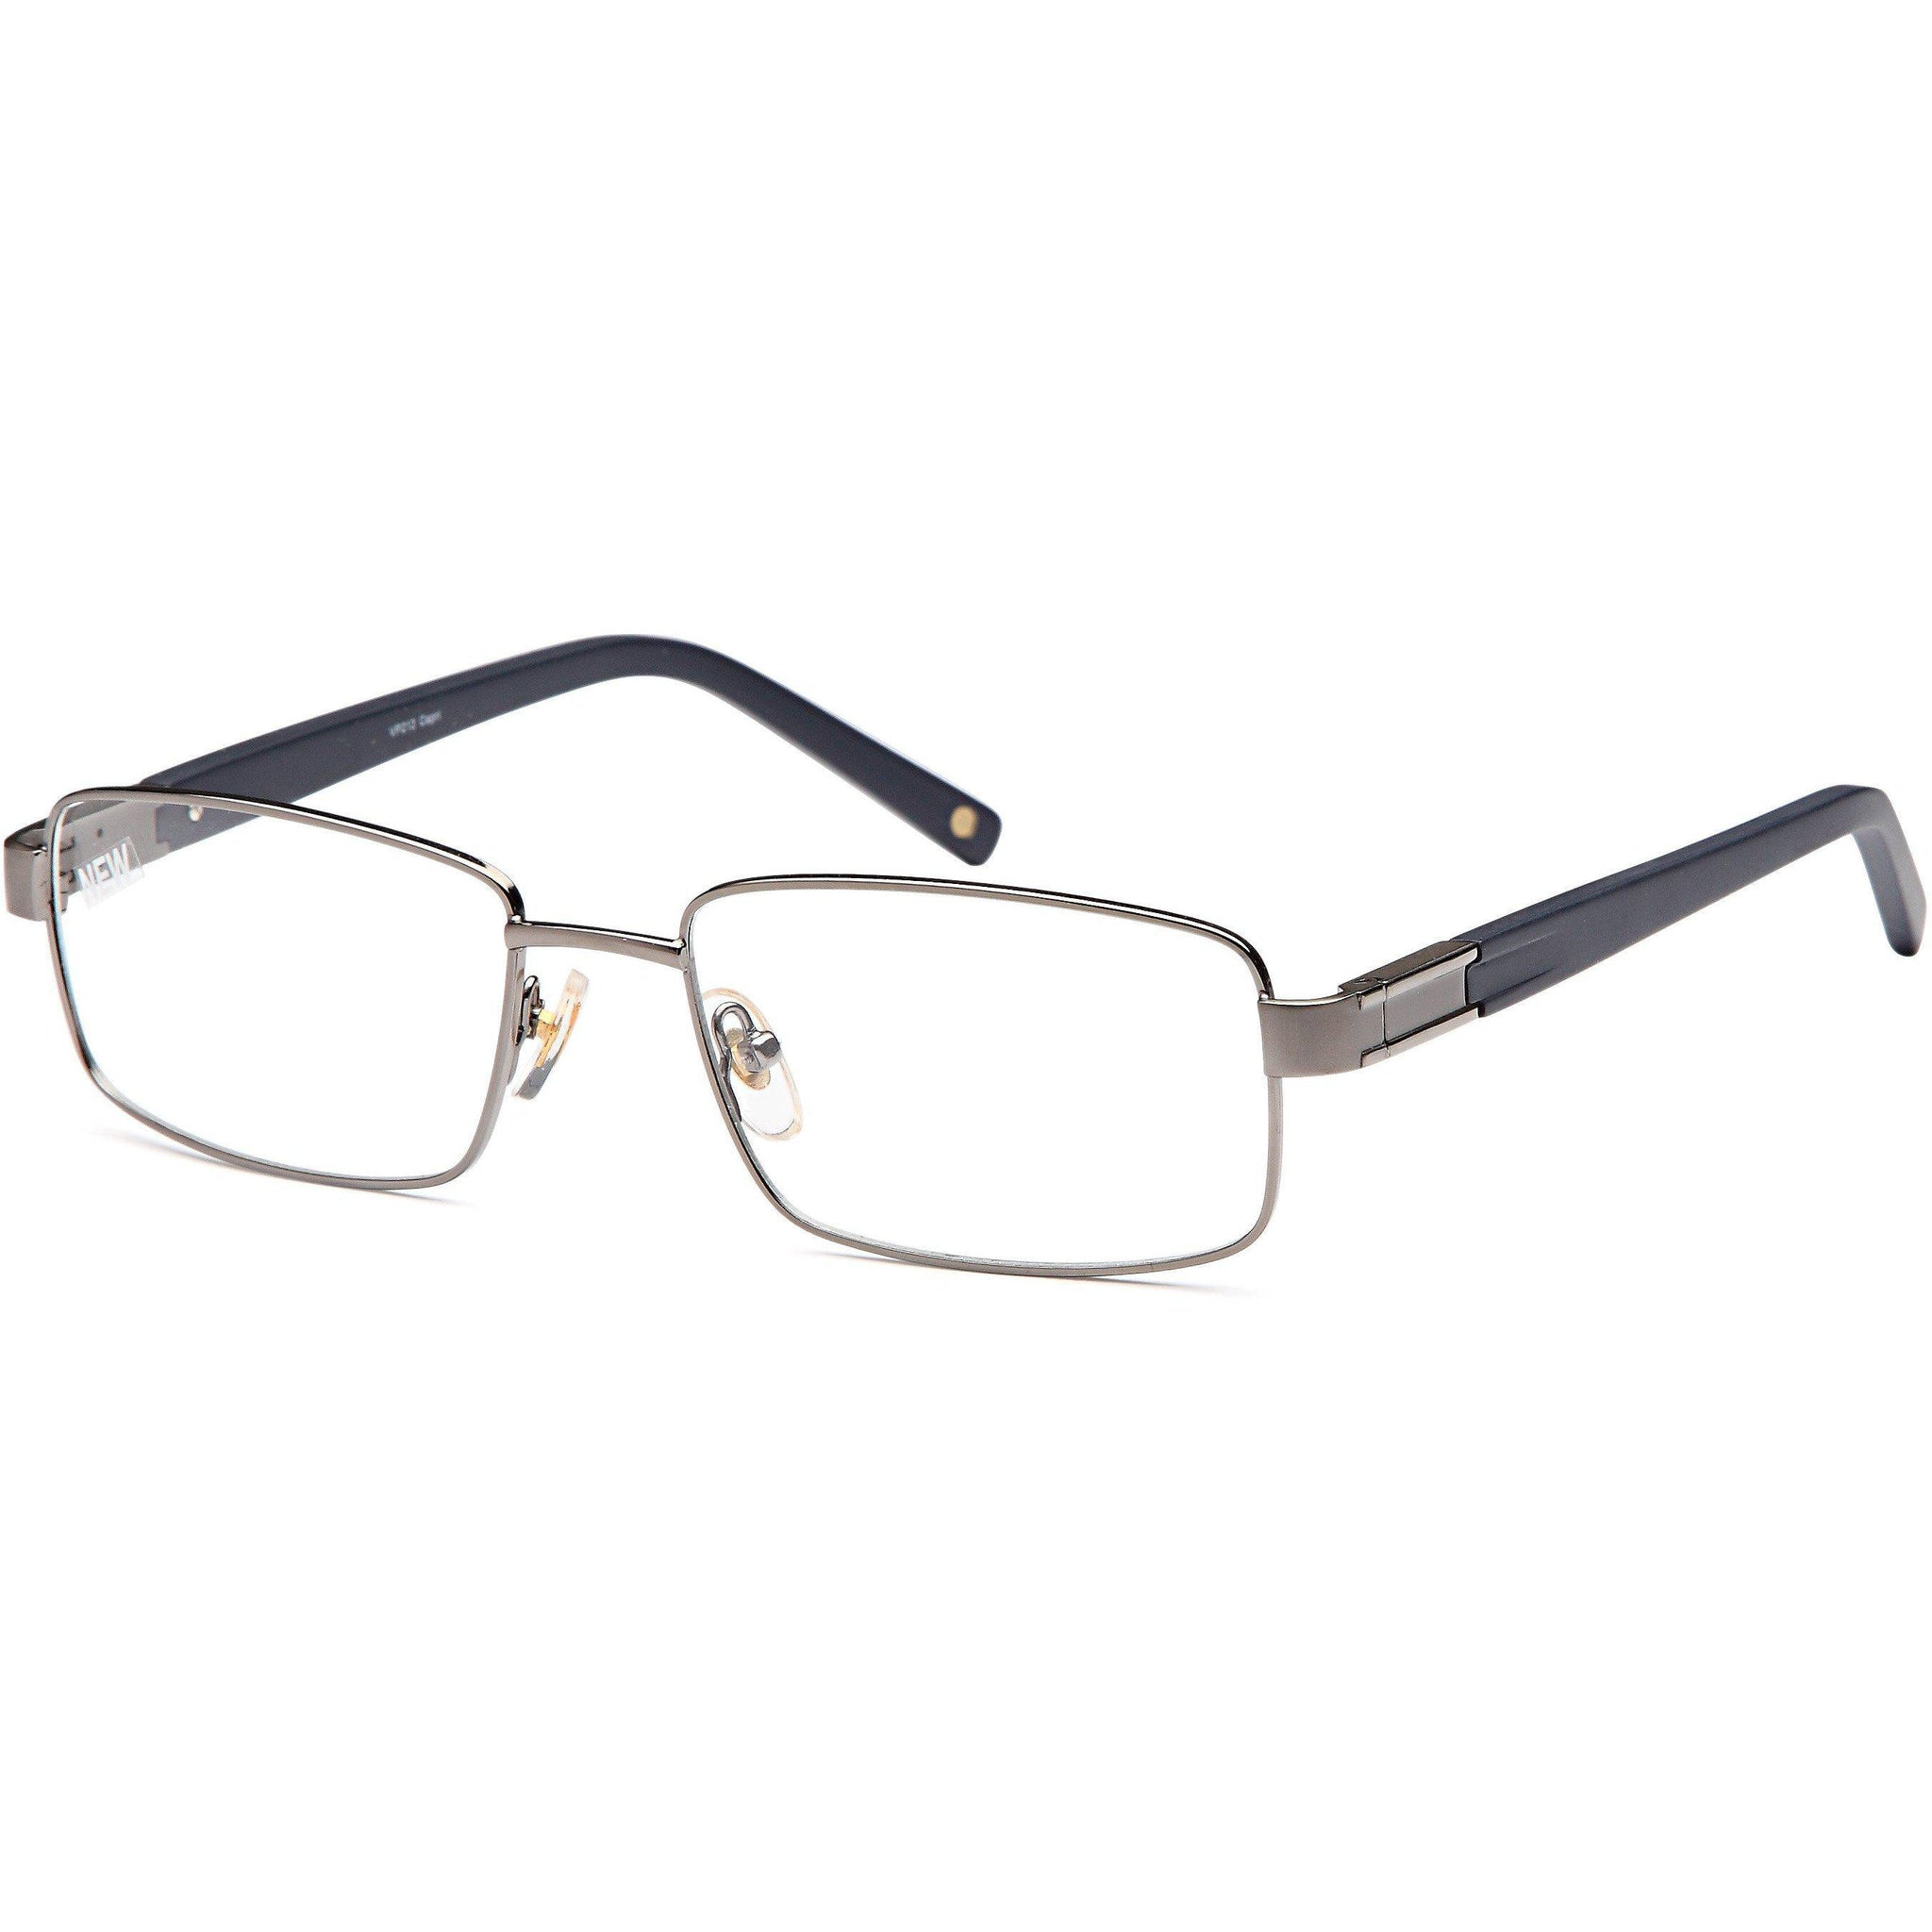 Classics Prescription Glasses VP 212 Frames